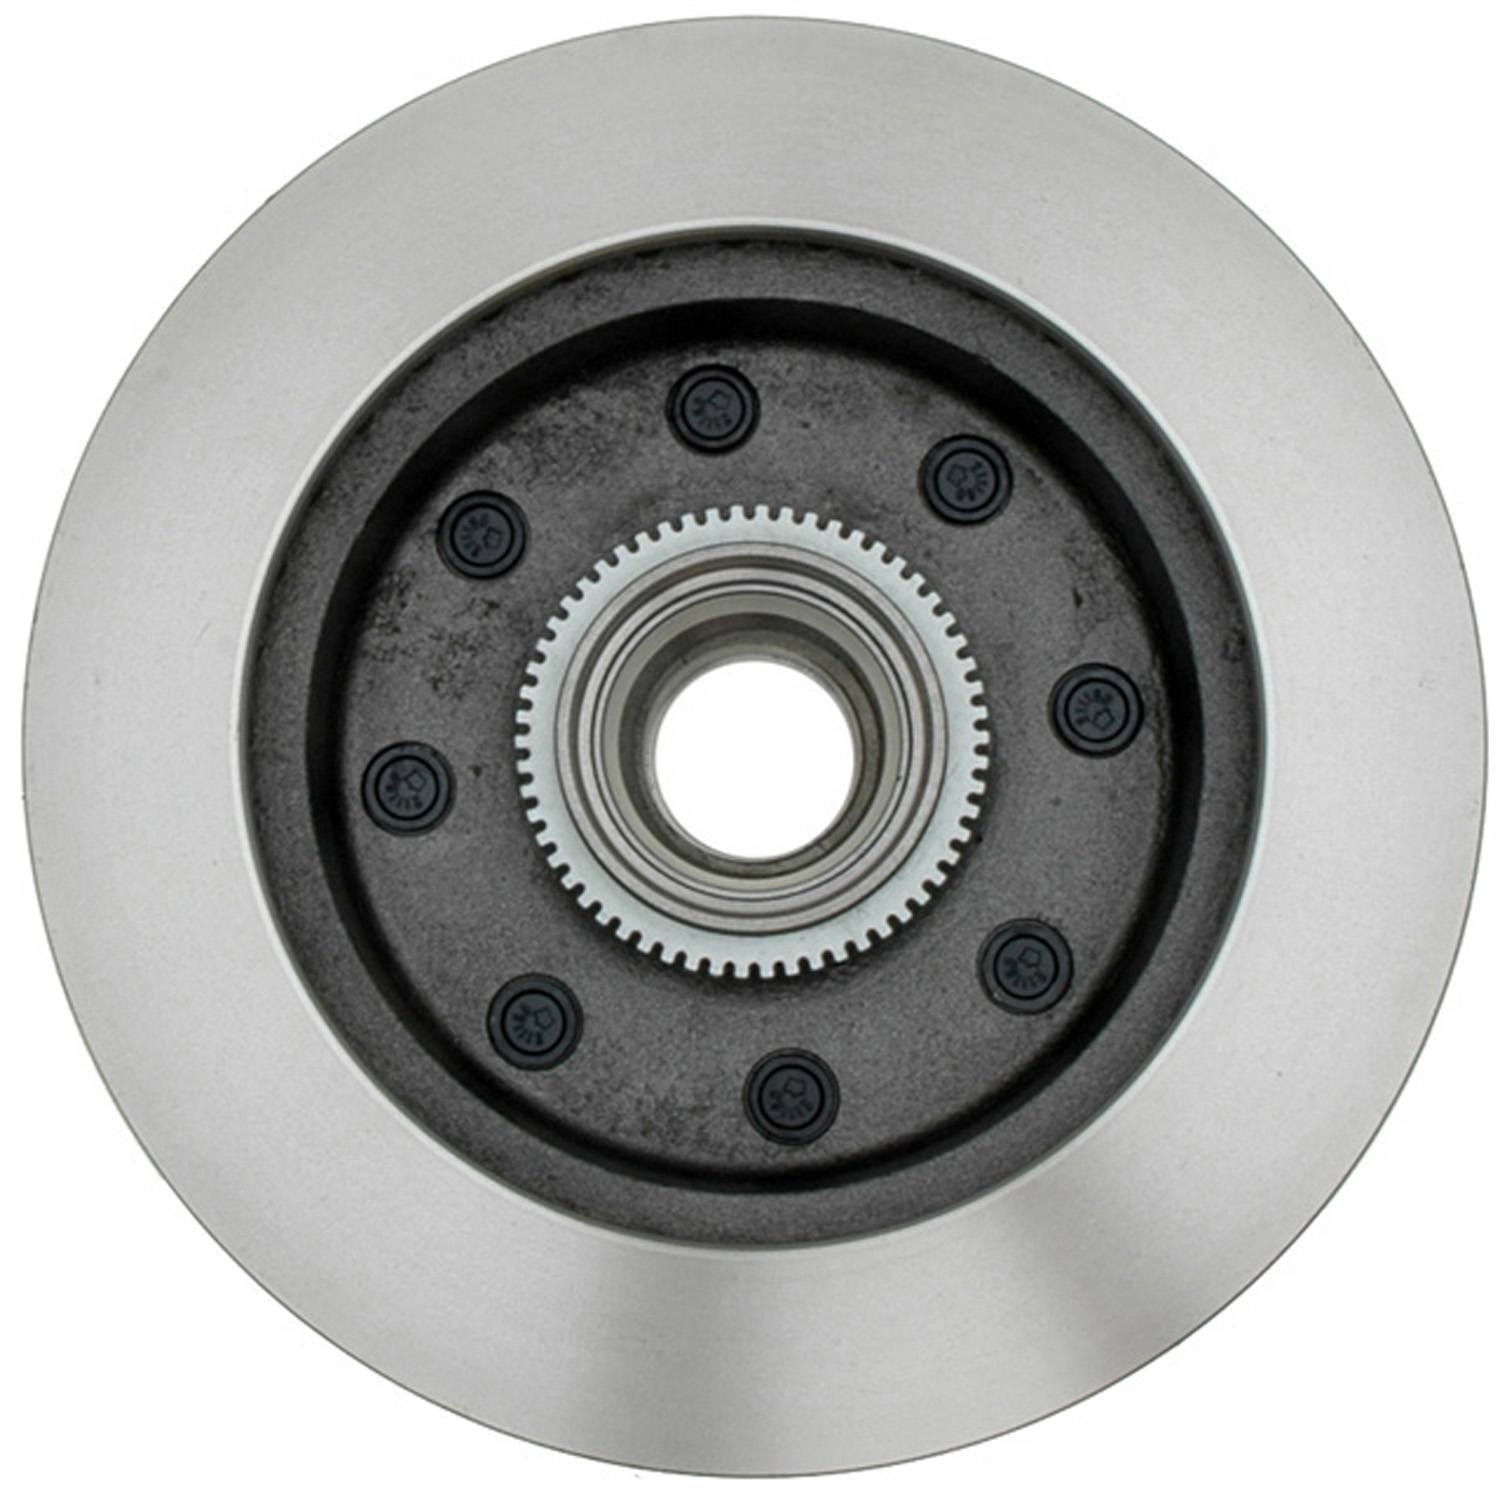 ACDELCO PROFESSIONAL BRAKES - Disc Brake Rotor and Hub Assembly - ADU 18A1087